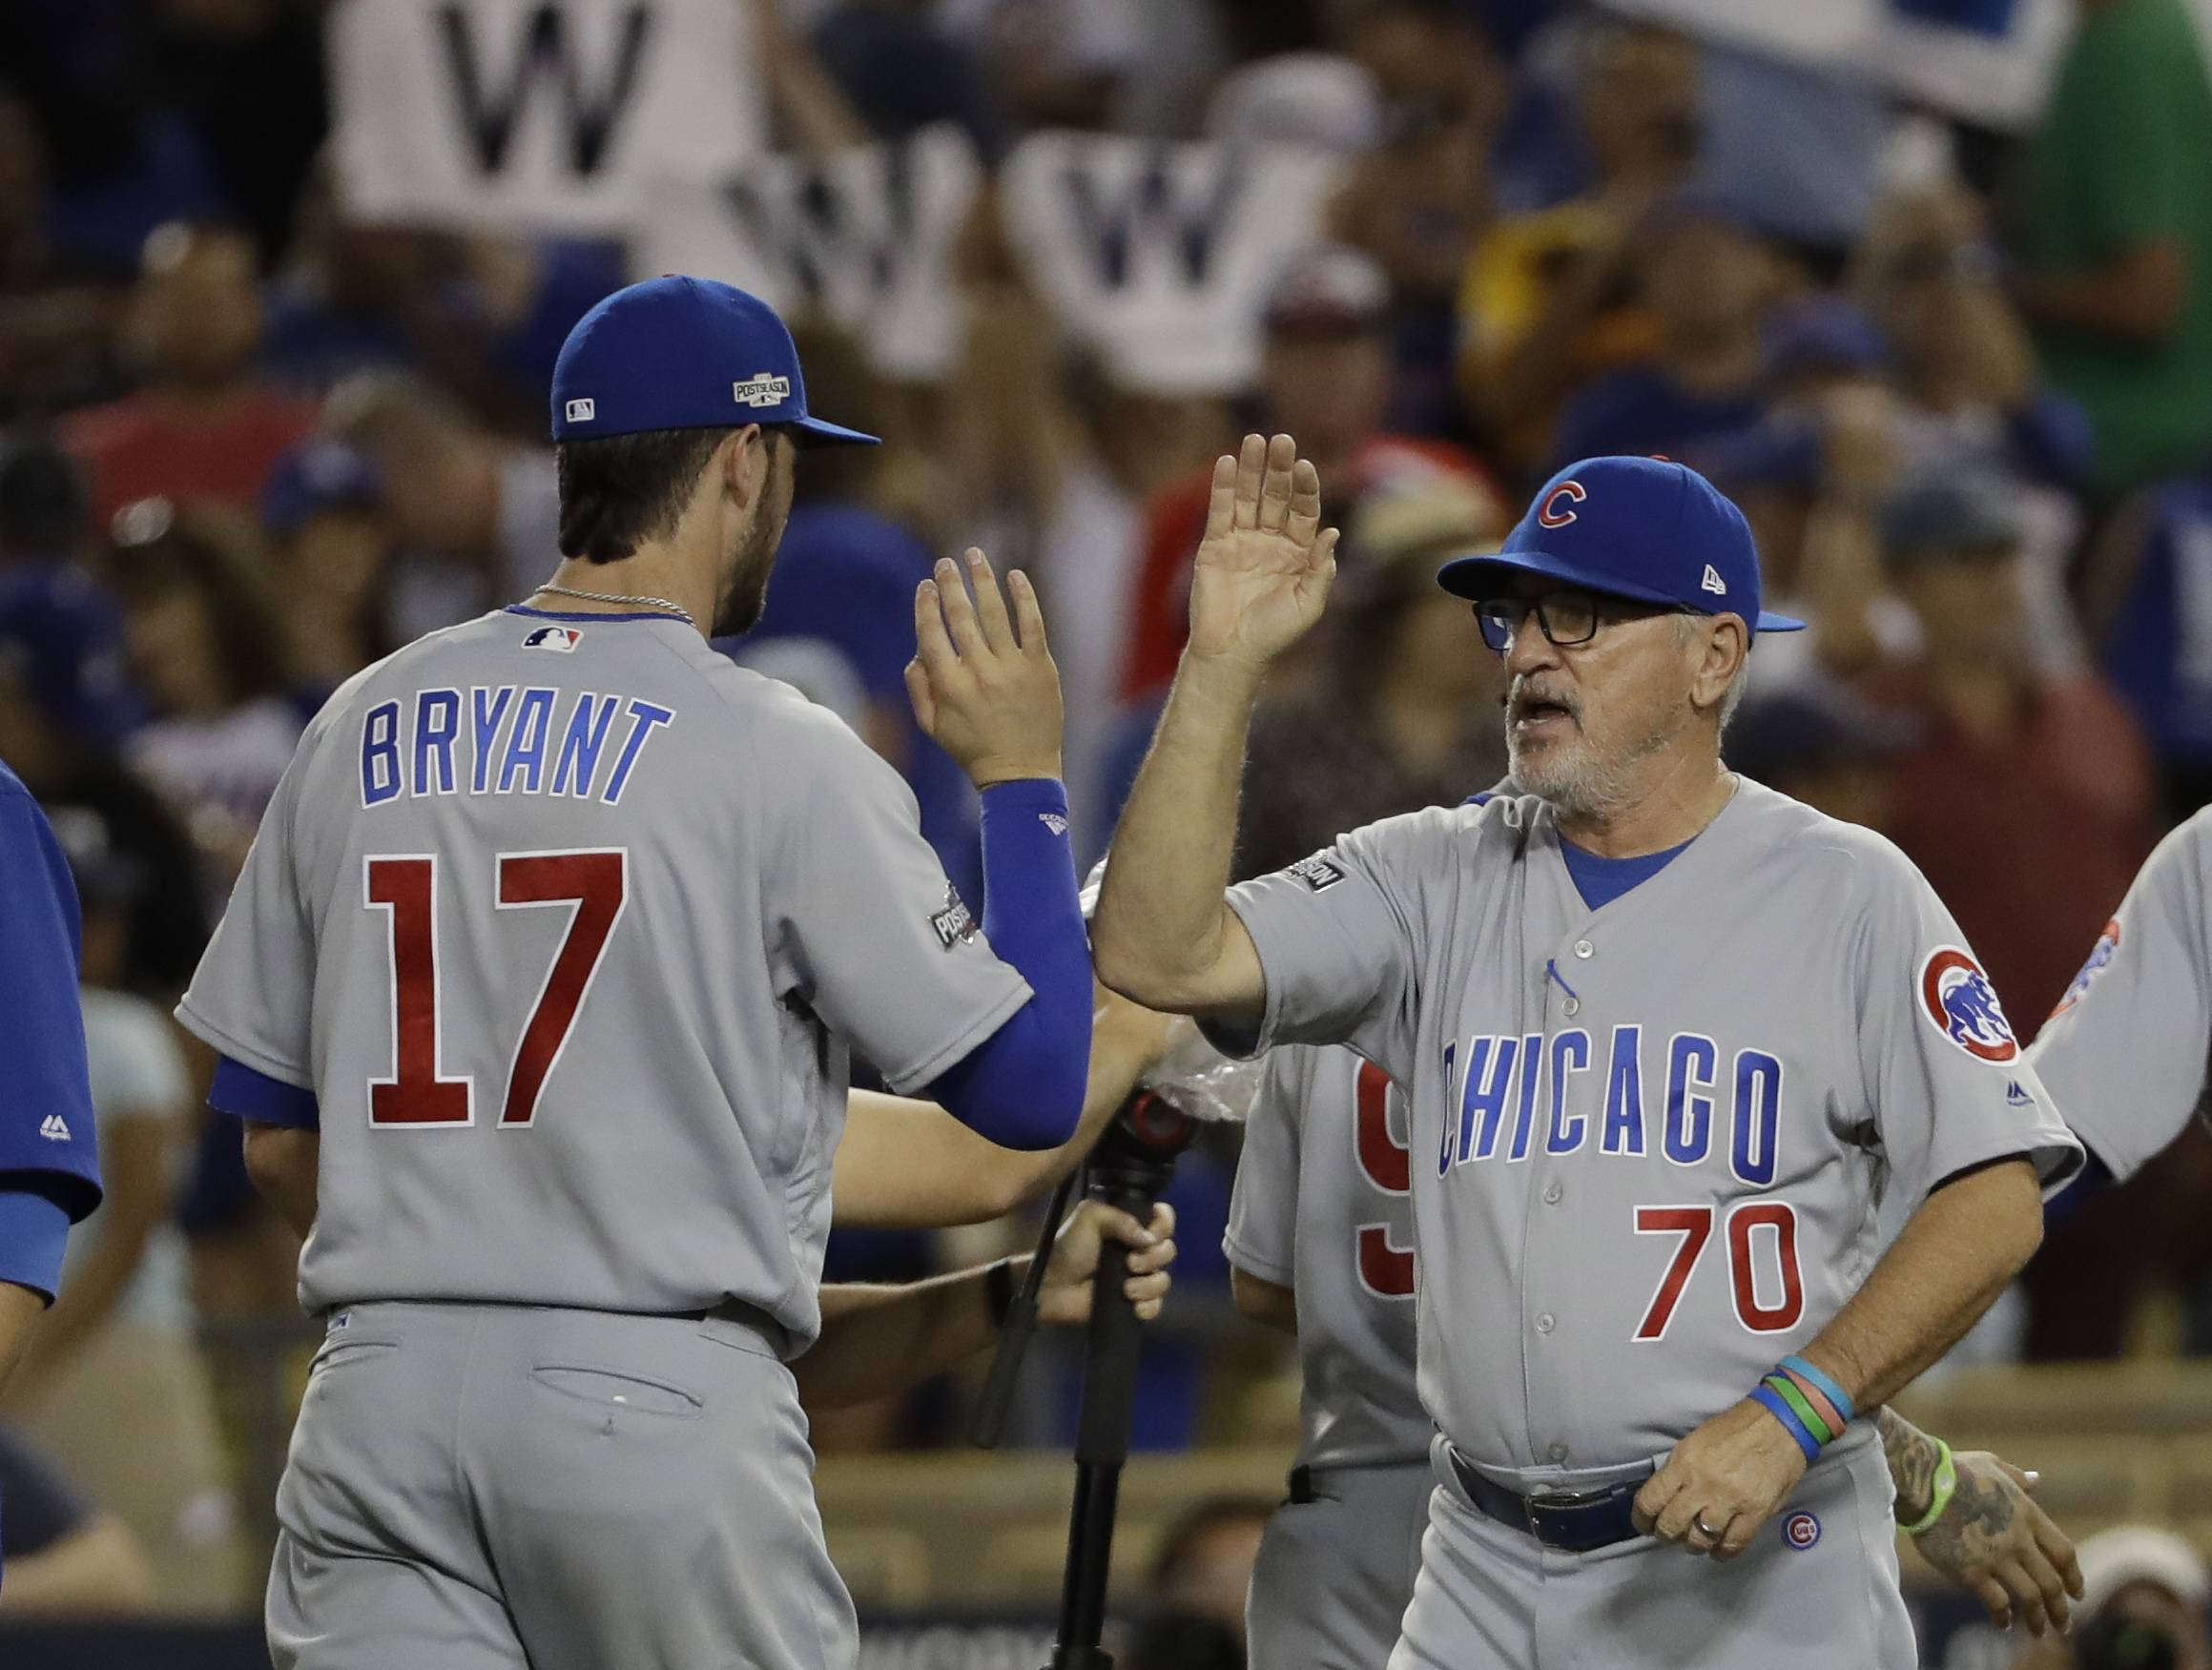 Chicago Cubs manager Joe Maddon celebrates with Kris Bryant after Game 5 of the National League baseball championship series against the Los Angeles Dodgers Thursday, Oct. 20, 2016, in Los Angeles. The Cubs won 8-4 to take a 3-2 lead in the series. (AP Photo/David J. Phillip)